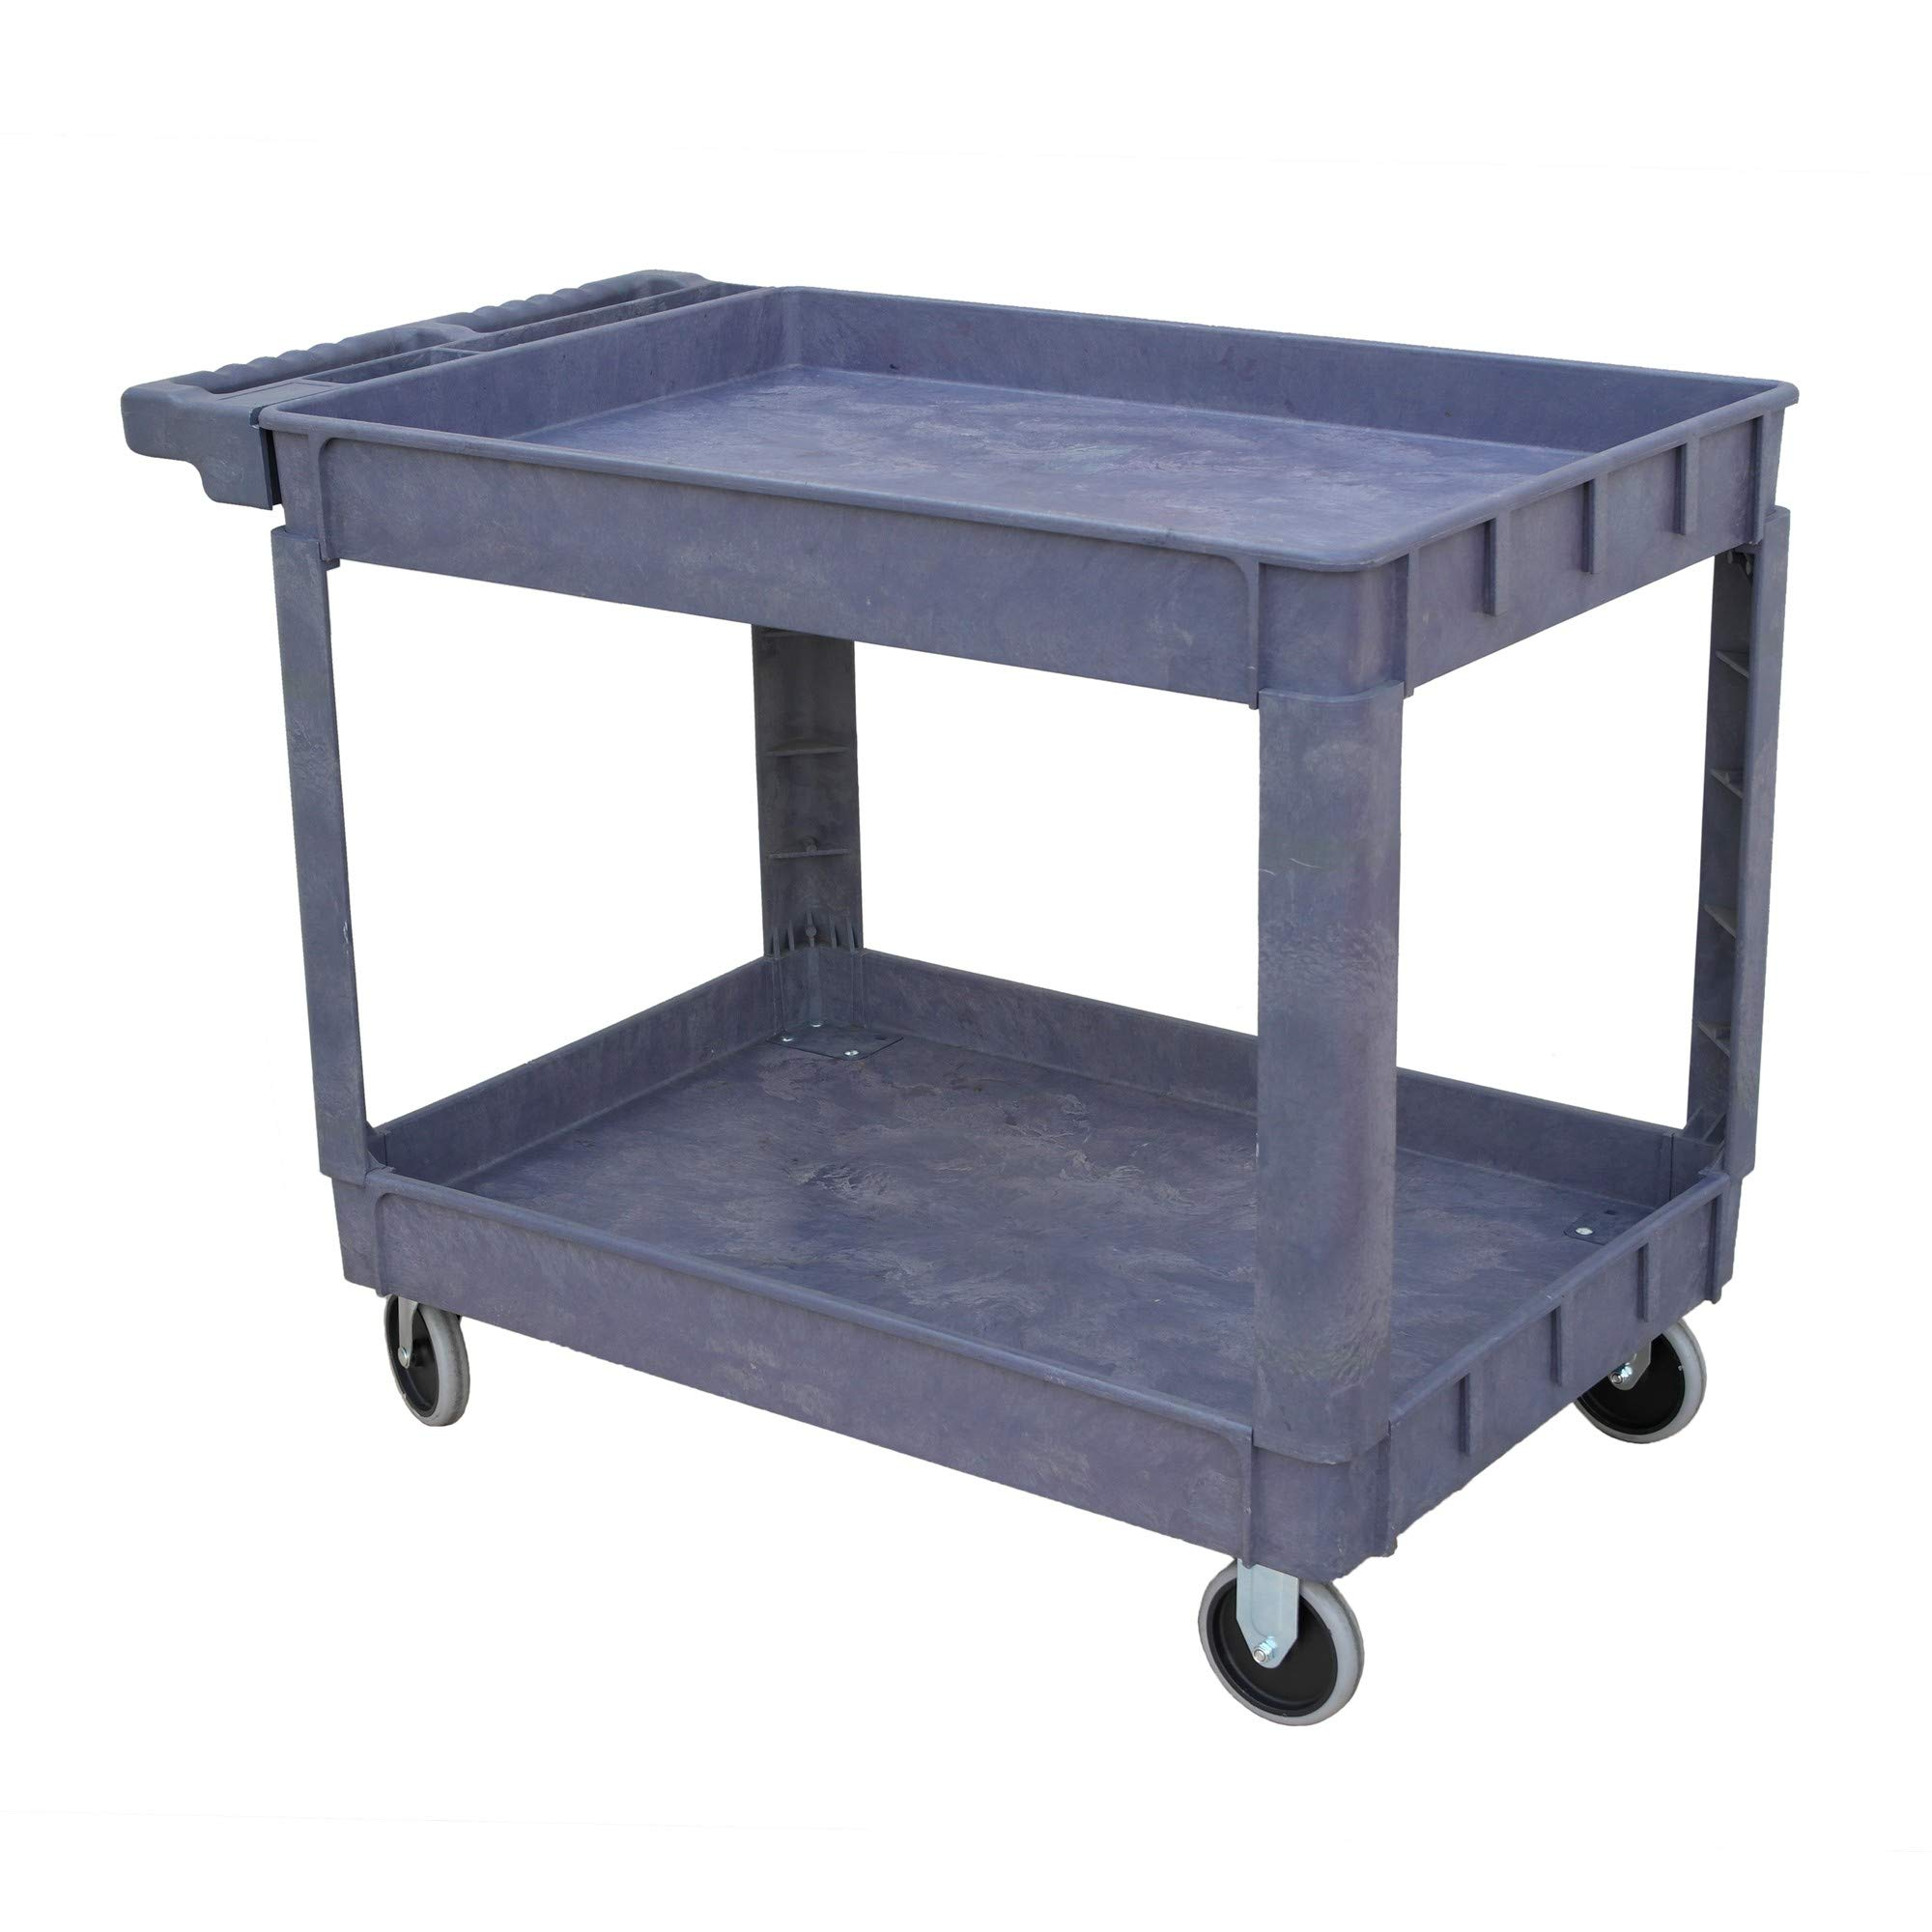 Storage Concepts Heavy Duty Service Cart, 600 Lbs. Weight Capacity, 30'' W x 16'' D x 32'' H